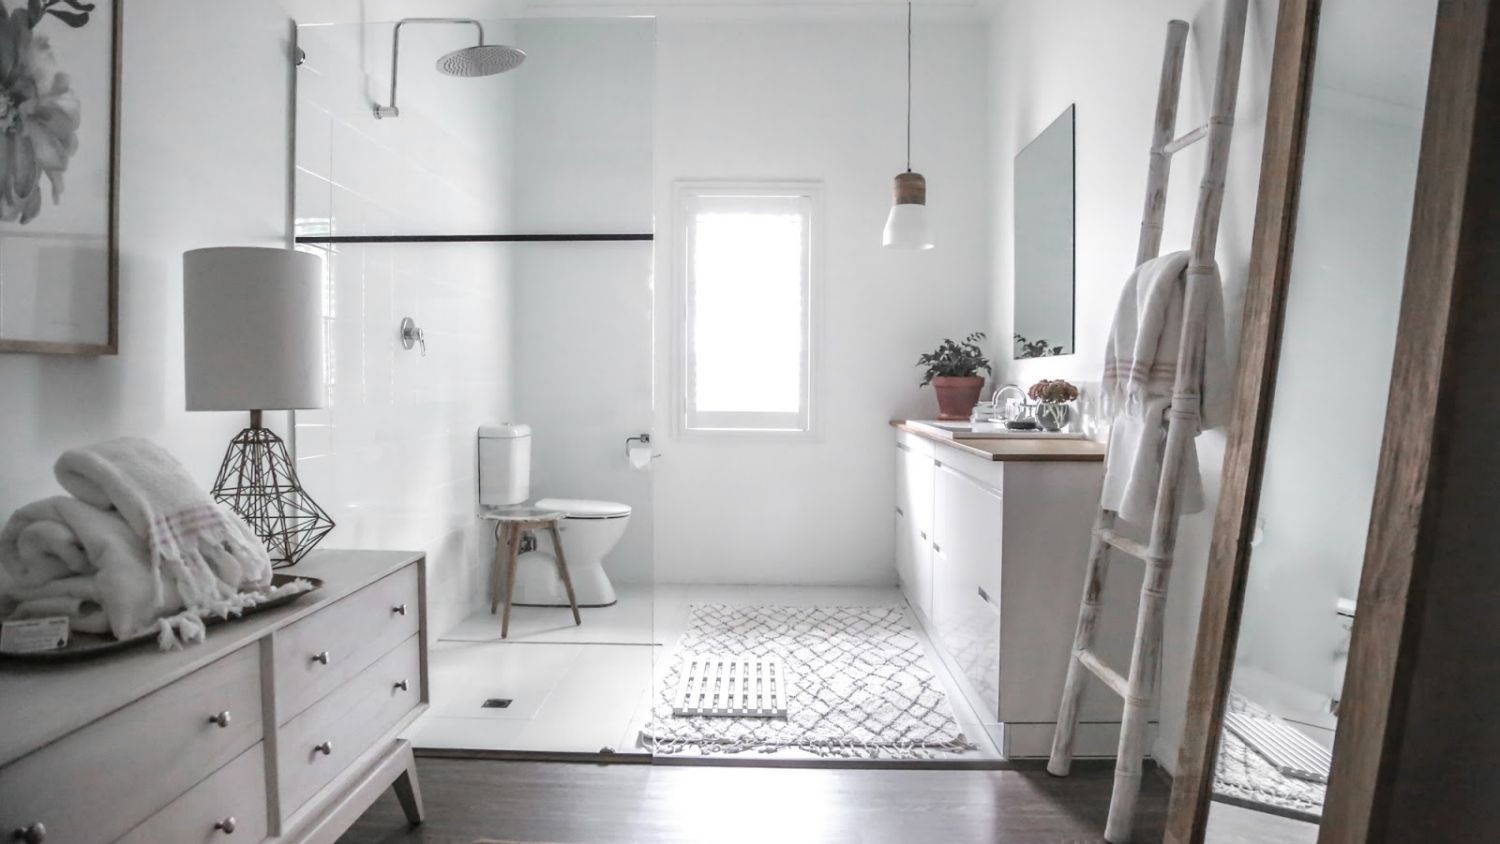 Modern Scandi-styled bathroom featured in a hotel // conradarchitects.com